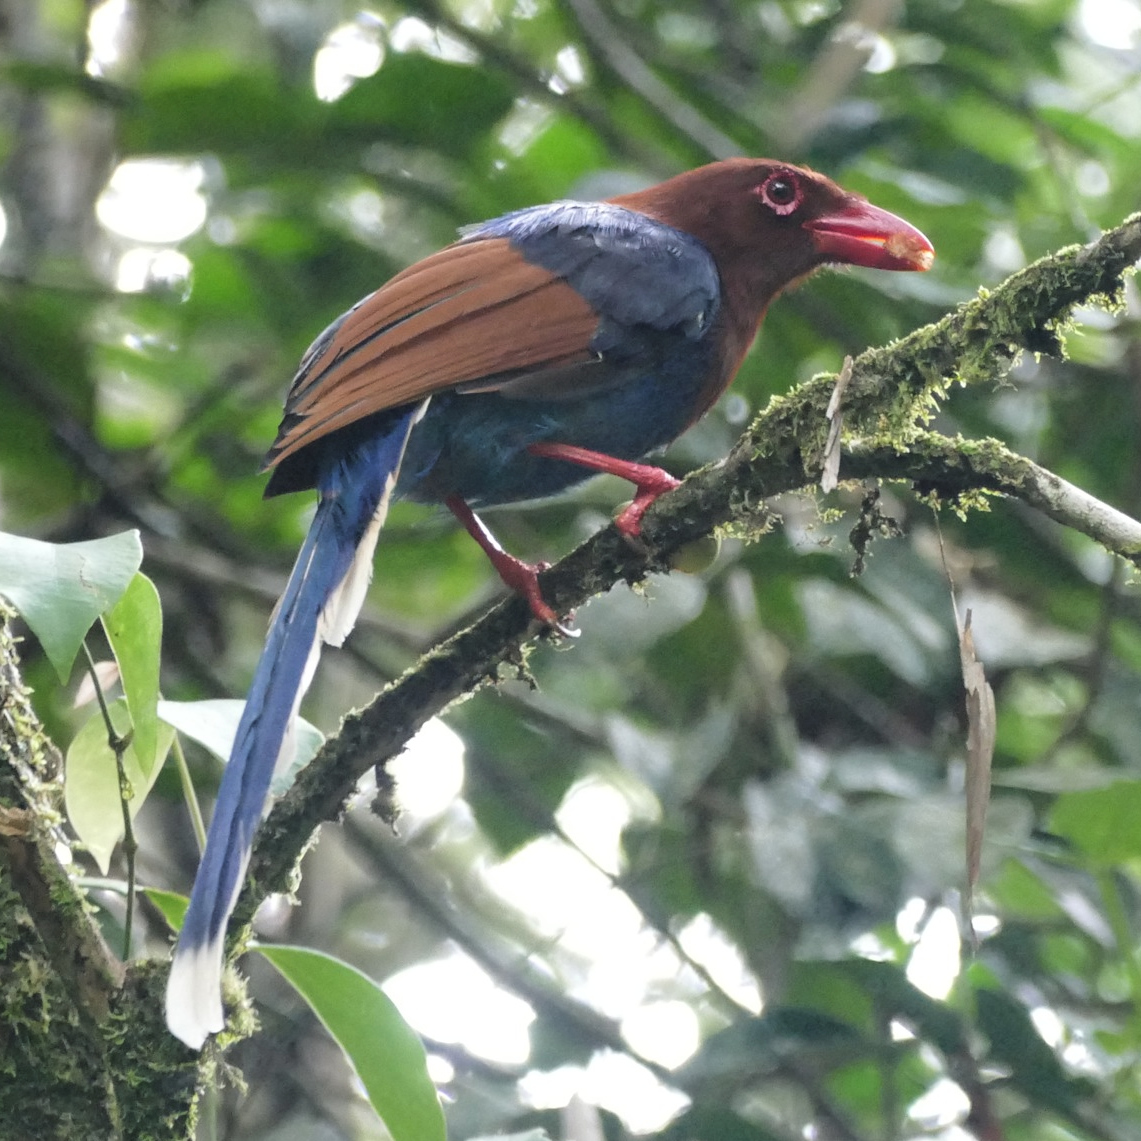 The Sri Lanka Blue-Magpie is one of the country's most colorful endemics. Noah Strycker